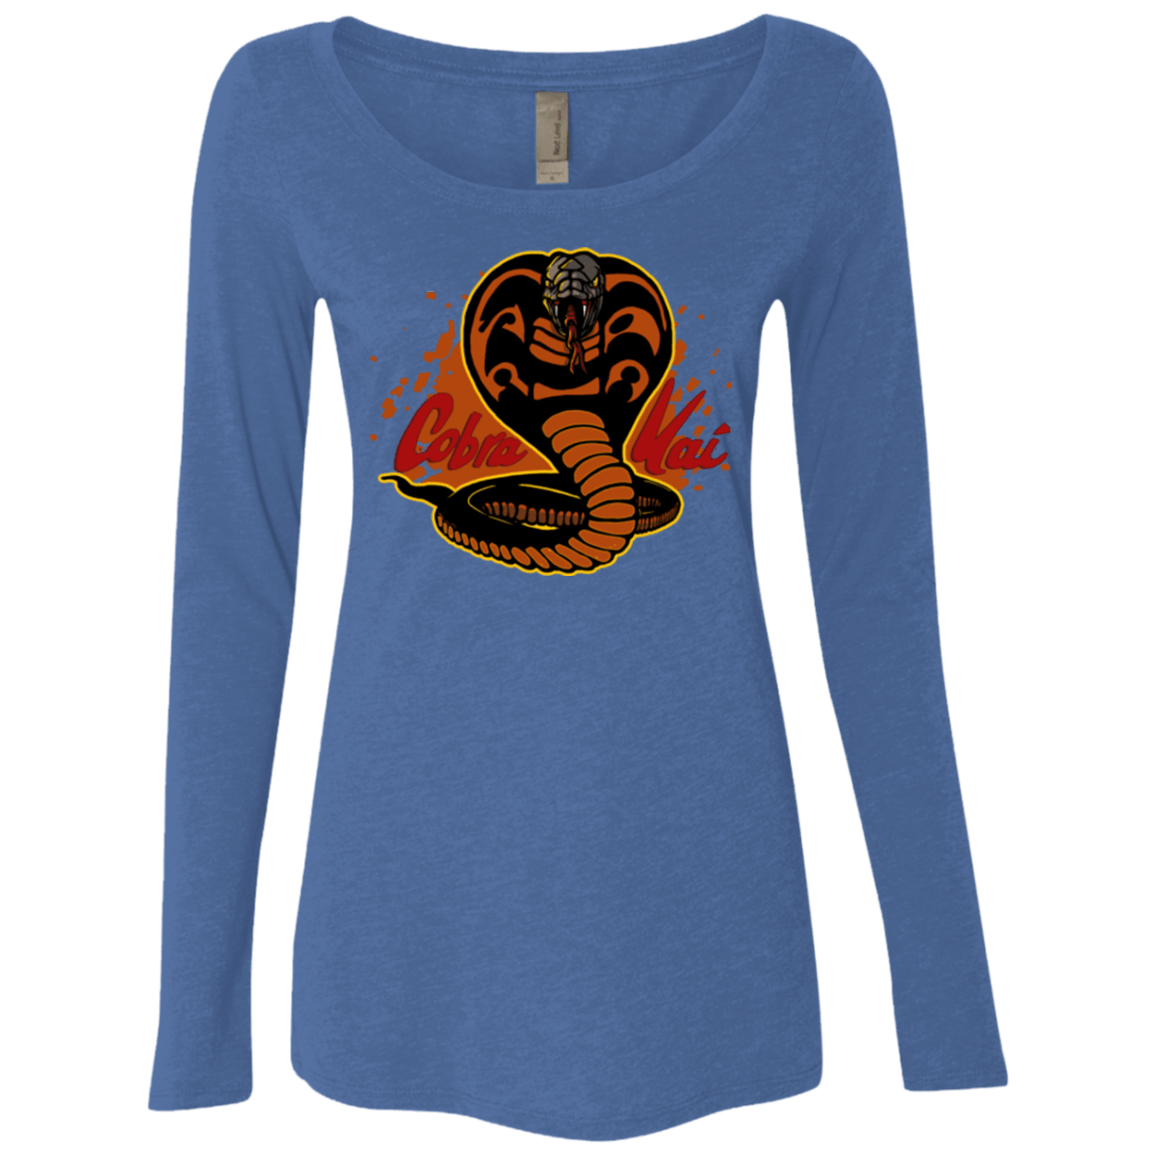 T-Shirts Vintage Royal / S Familiar Reptile Women's Triblend Long Sleeve Shirt